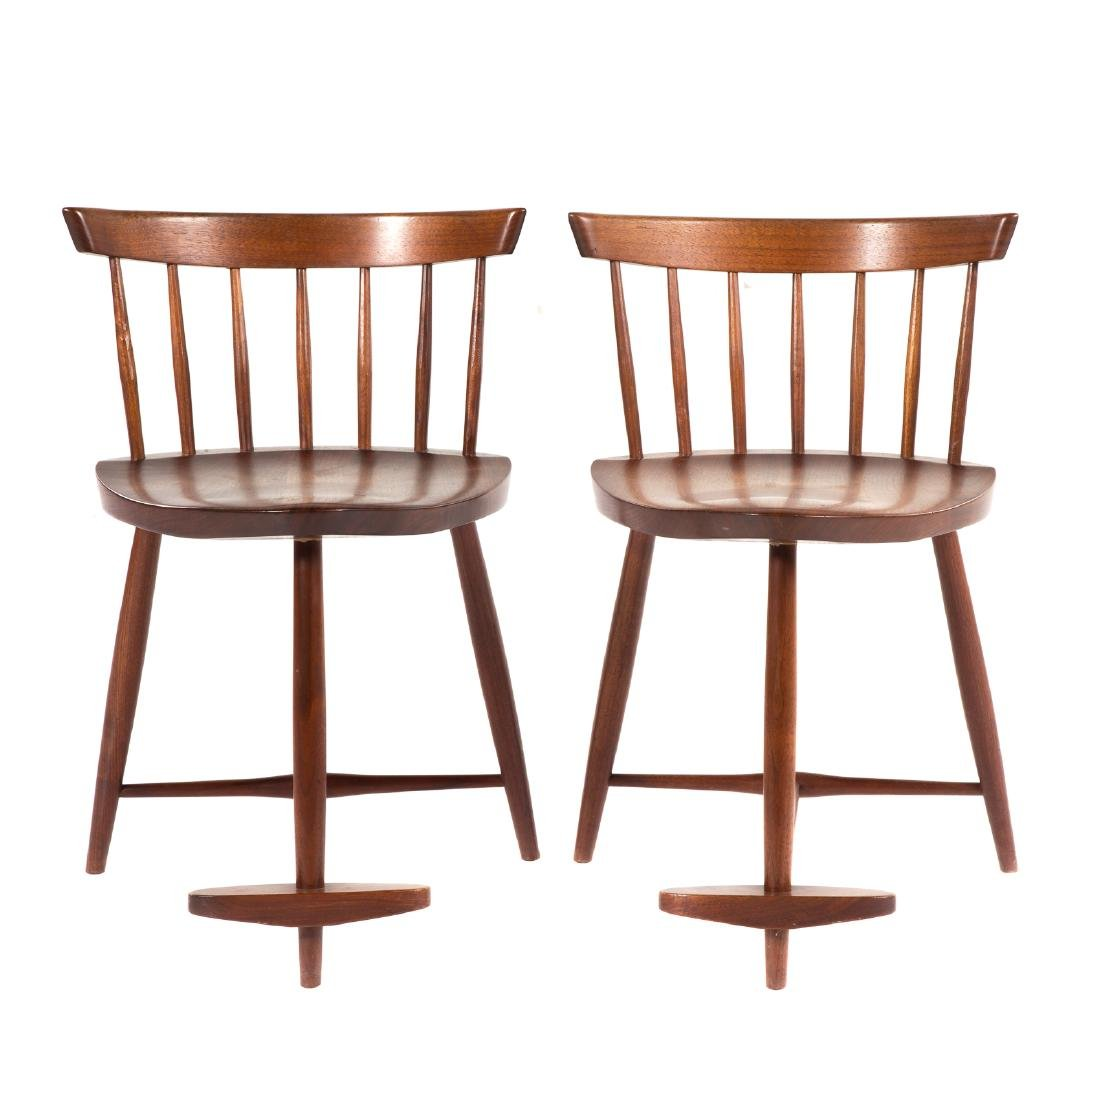 Pair of George Nakashima Mira Chairs